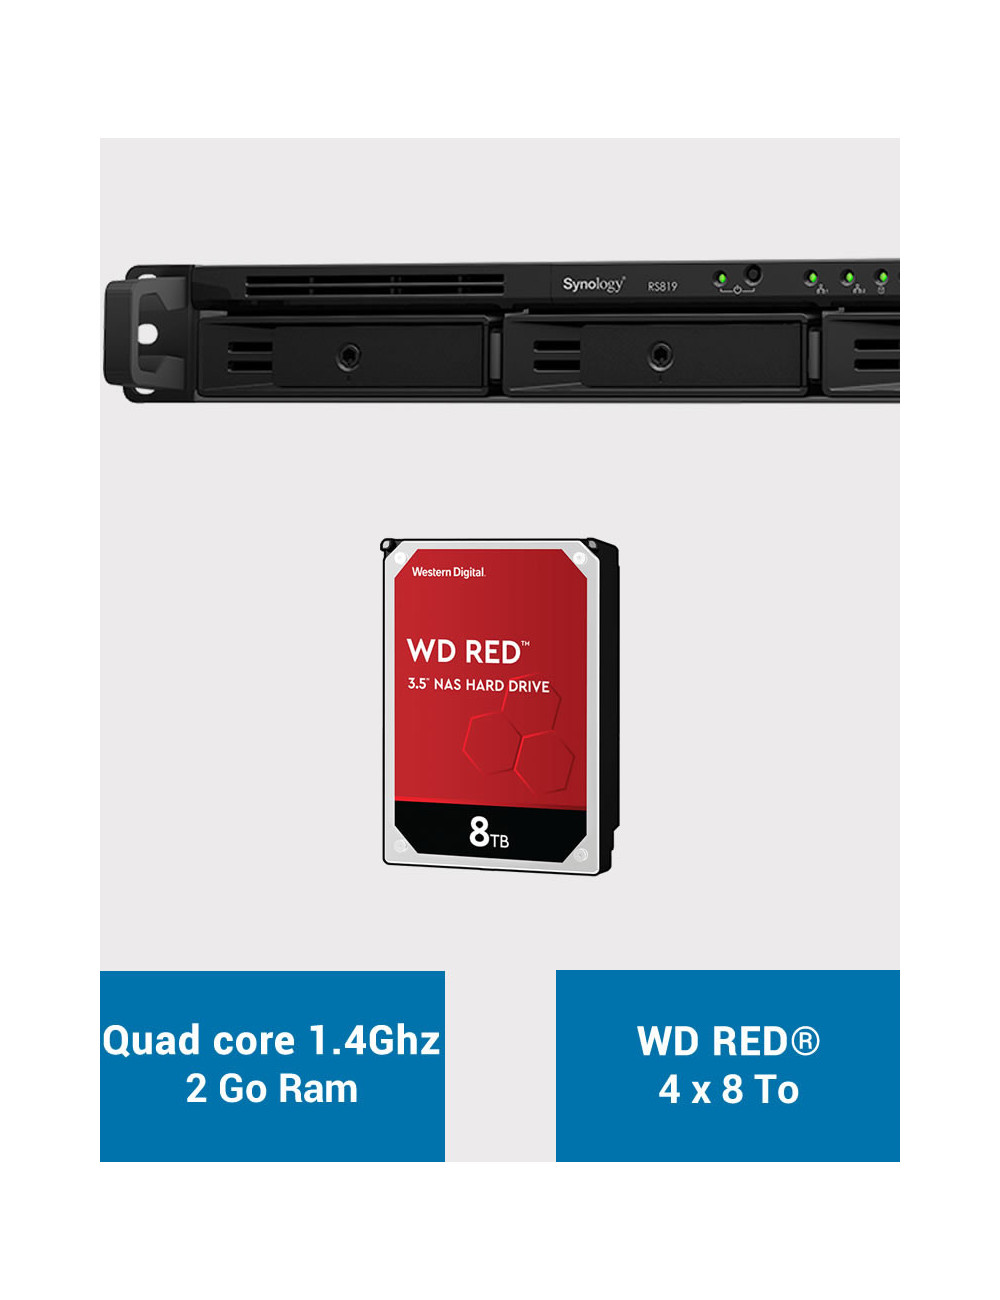 Synology RS819 NAS Server WD RED 32TB (4x8TB)